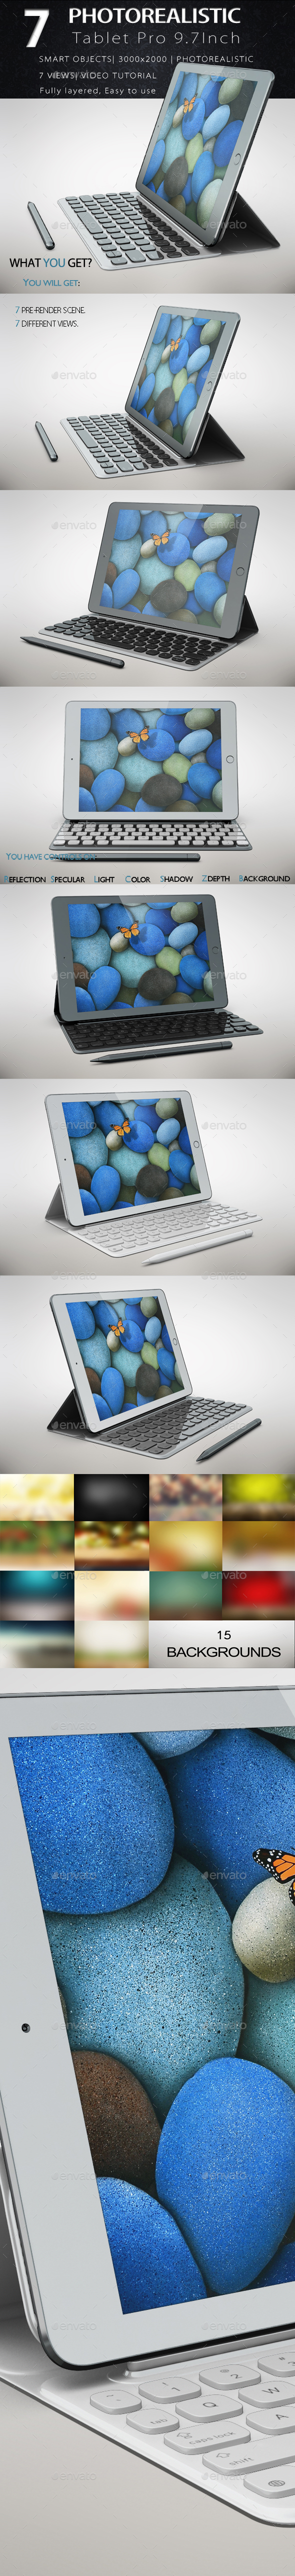 Tablet Pad Pro 9.7 inch Keyboar & Pencil Mock Up - Product Mock-Ups Graphics